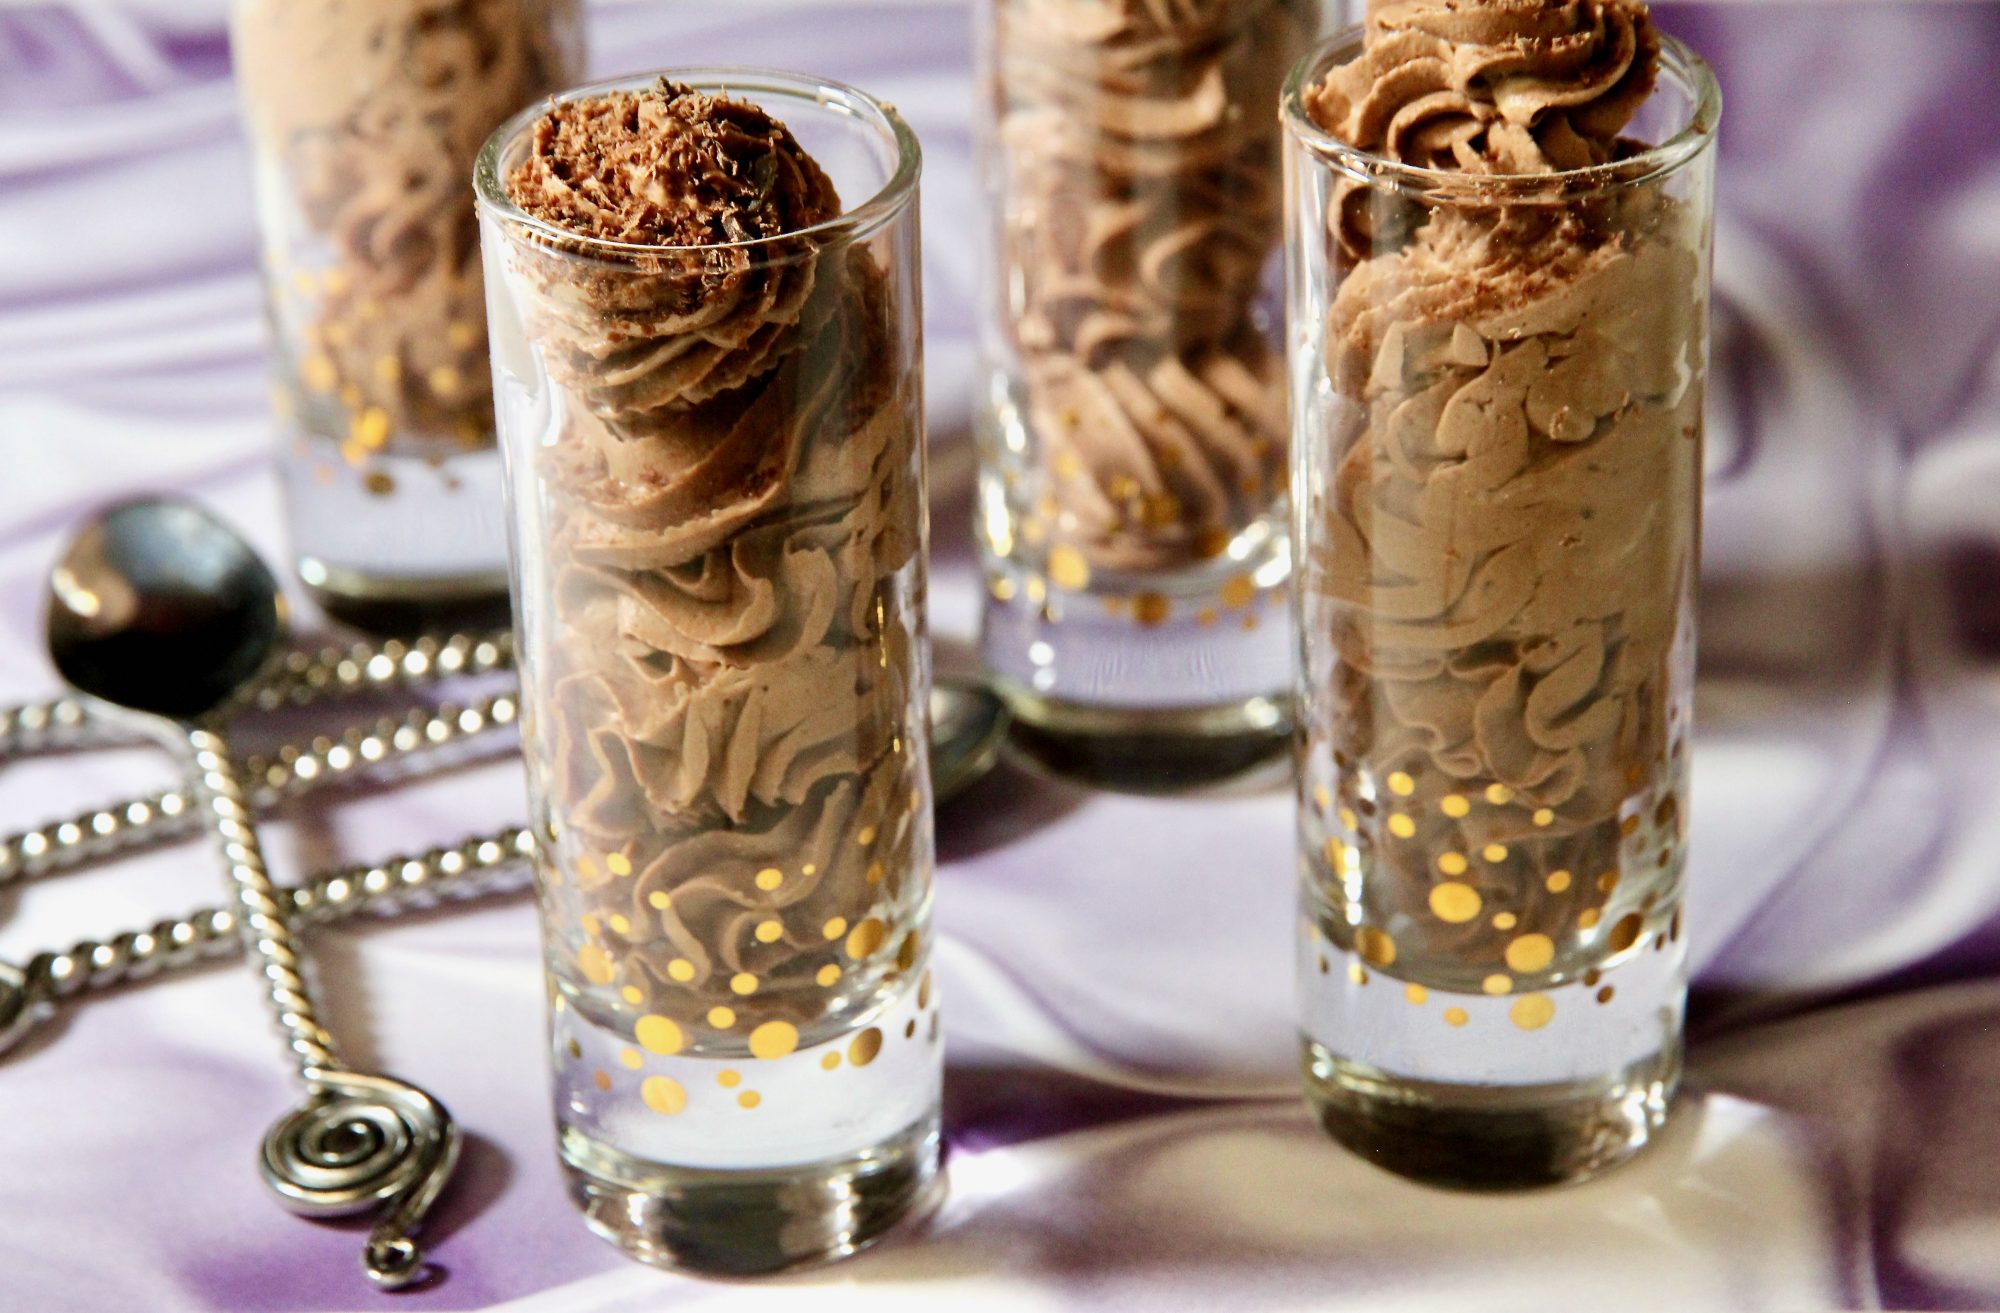 tall tumbler glasses with chocolate mousse on purple cloth